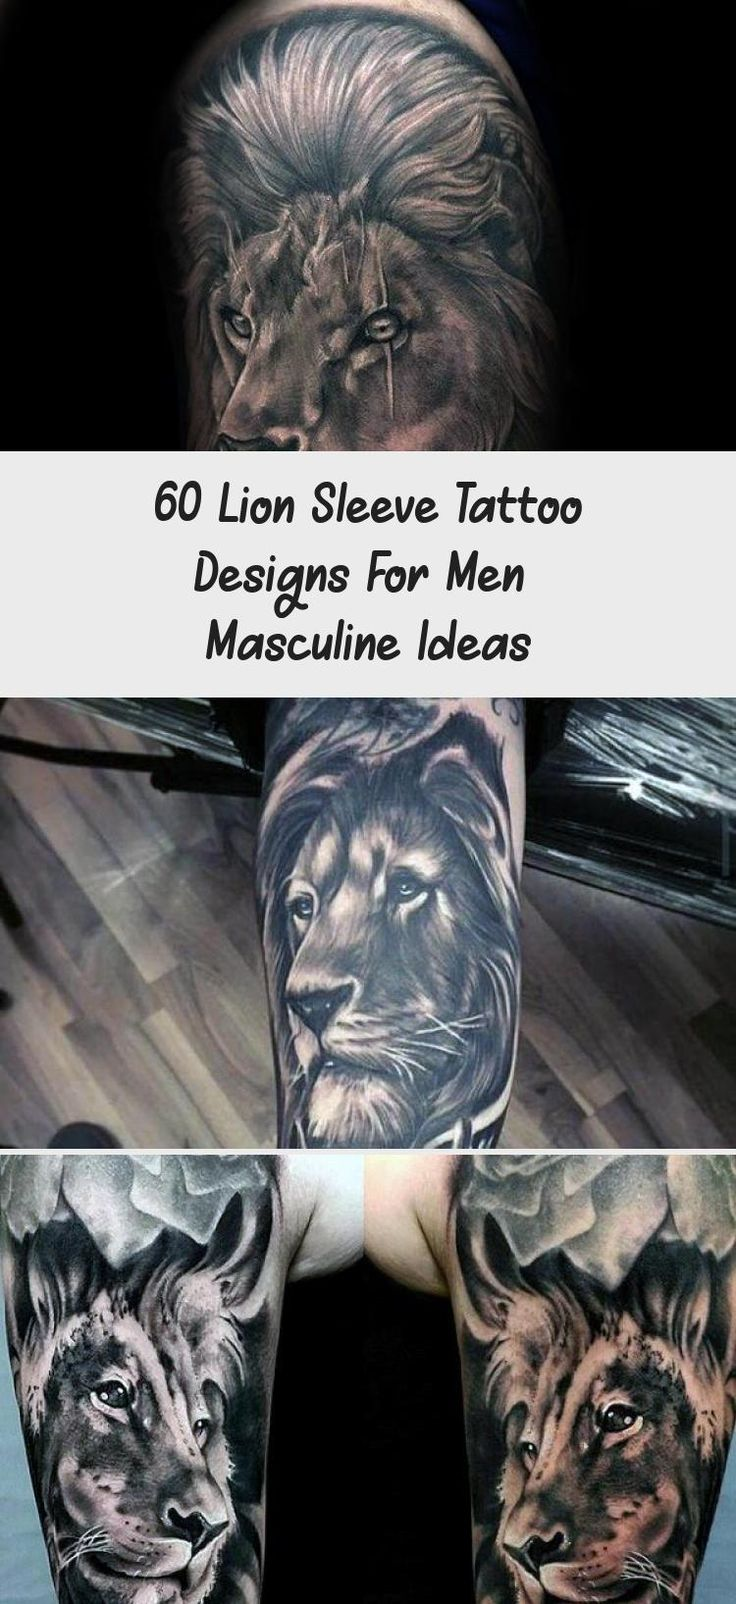 Leg Sleeve Lion Tattoo Designs For Guys liontattooFoot